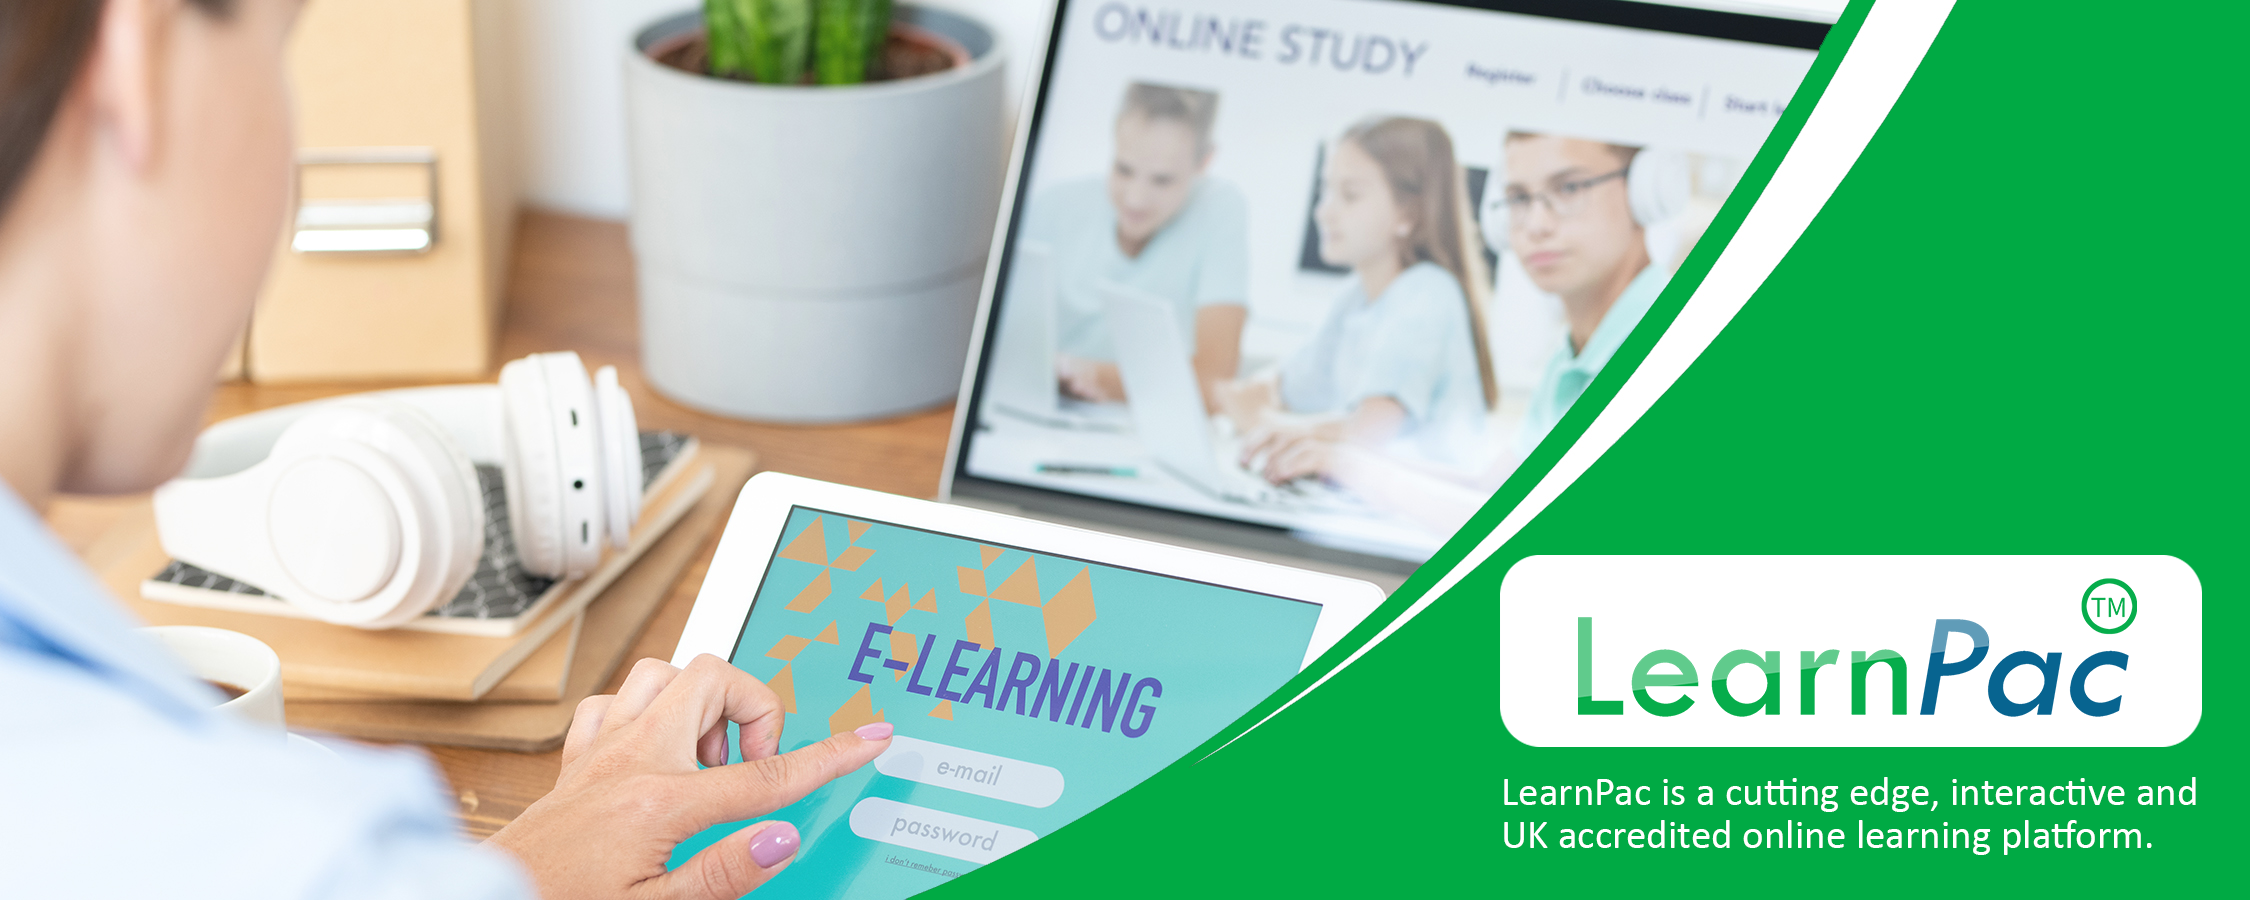 Employee Recognition Training - Online Learning Courses - E-Learning Courses - LearnPac Systems UK -